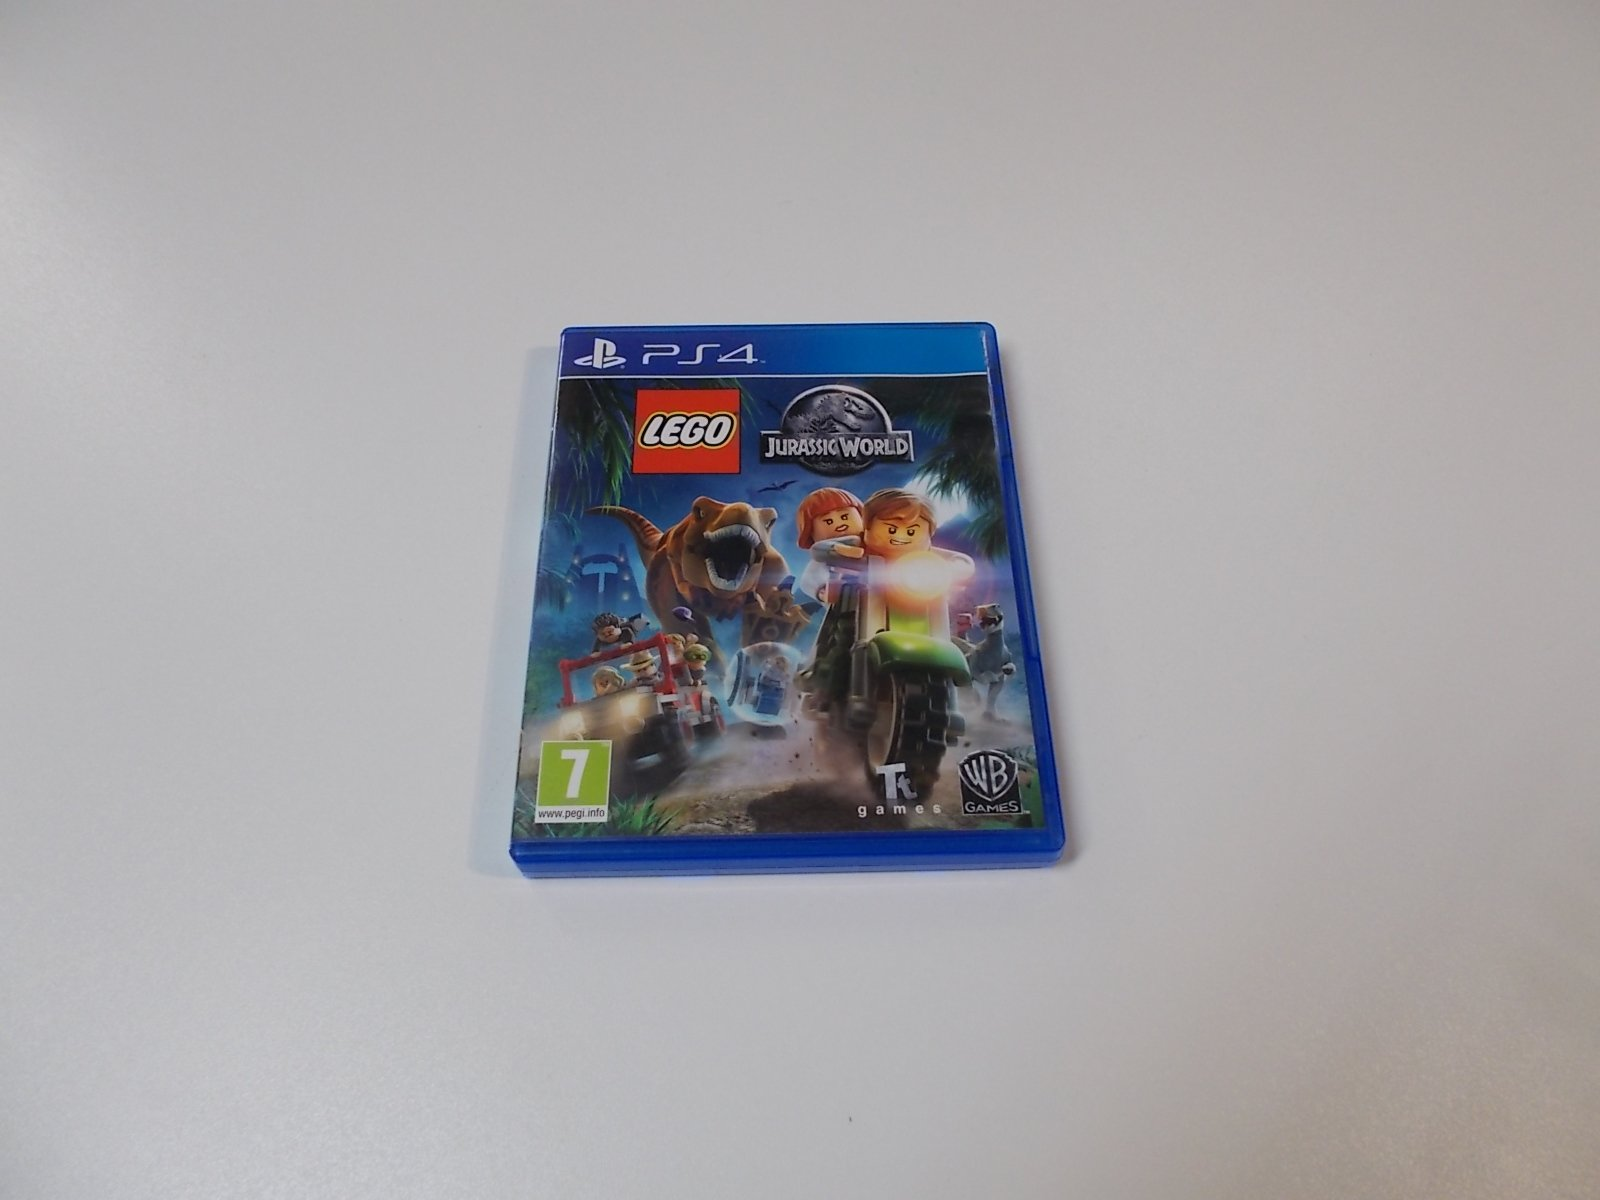 Lego Jurassic World - GRA Ps4 - Opole 0492